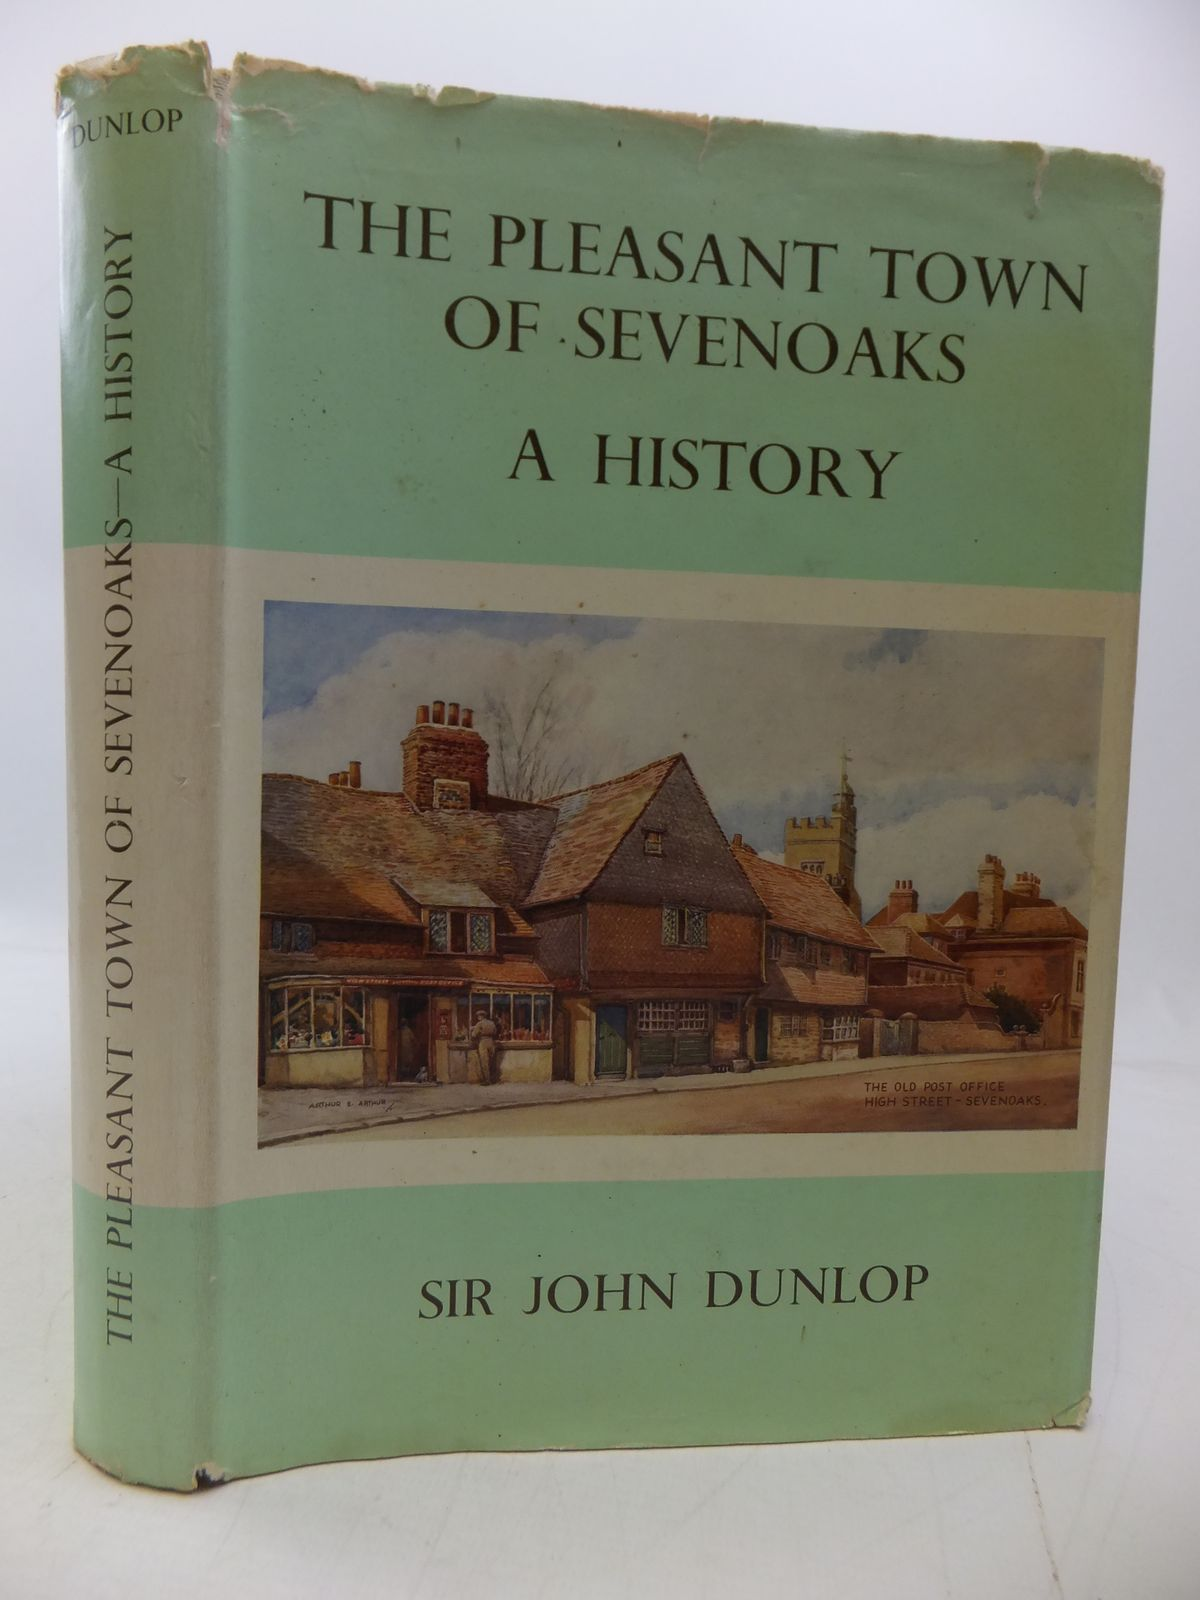 Photo of THE PLEASANT TOWN OF SEVENOAKS A HISTORY written by Dunlop, John published by The Caxton And Holmesdale Press (STOCK CODE: 1808235)  for sale by Stella & Rose's Books